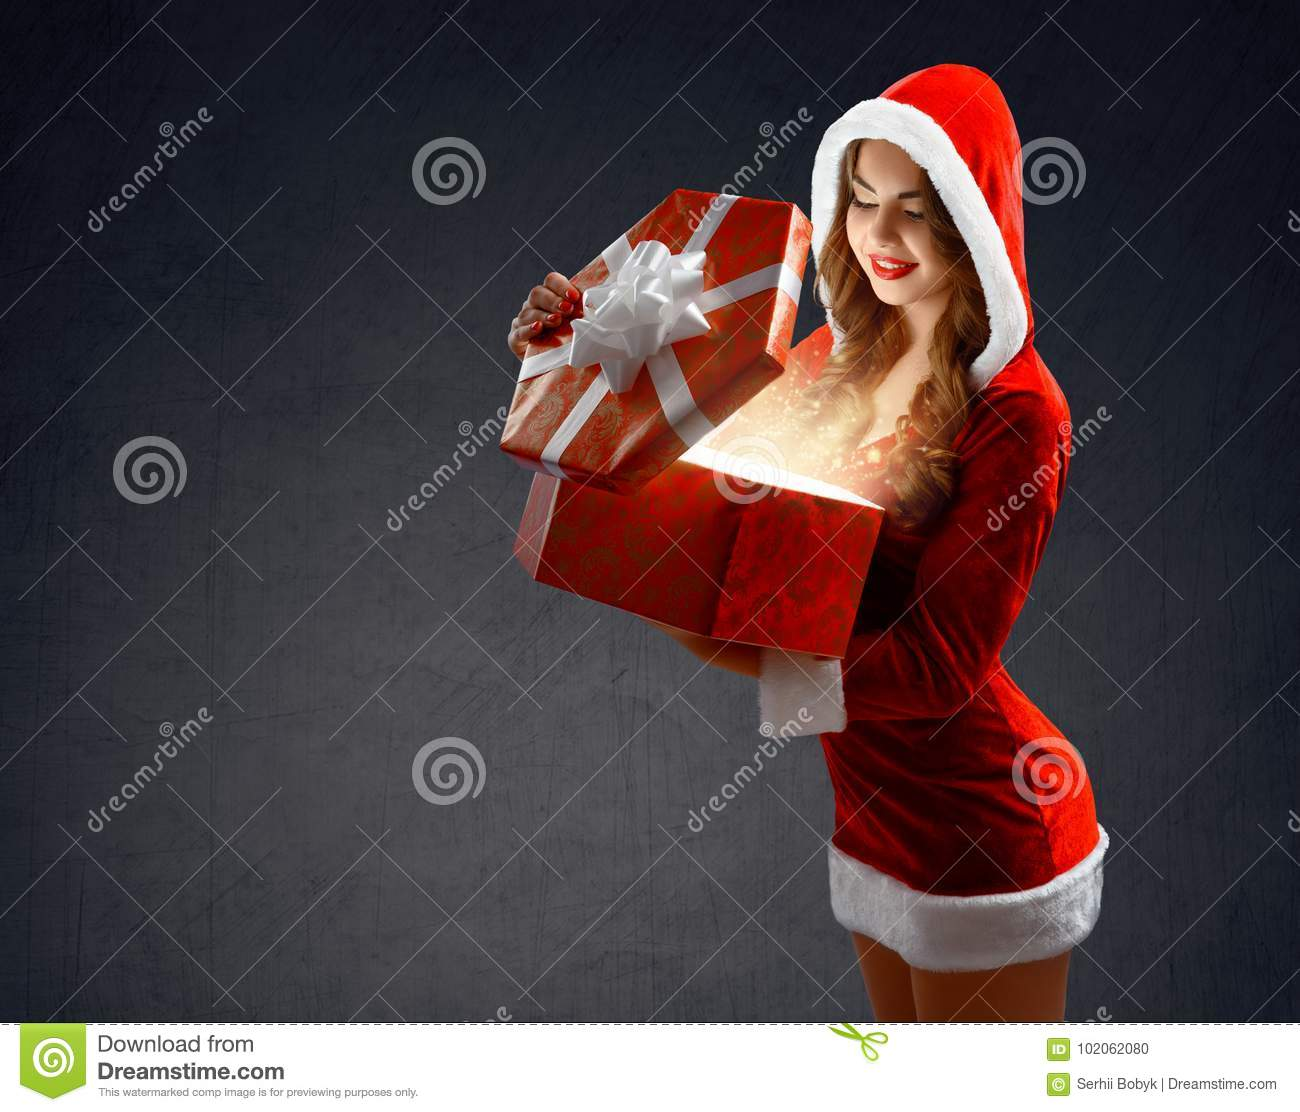 Snow Maiden In Red Suit Holds A Gt For New Tear 2018,2019 Stock ...